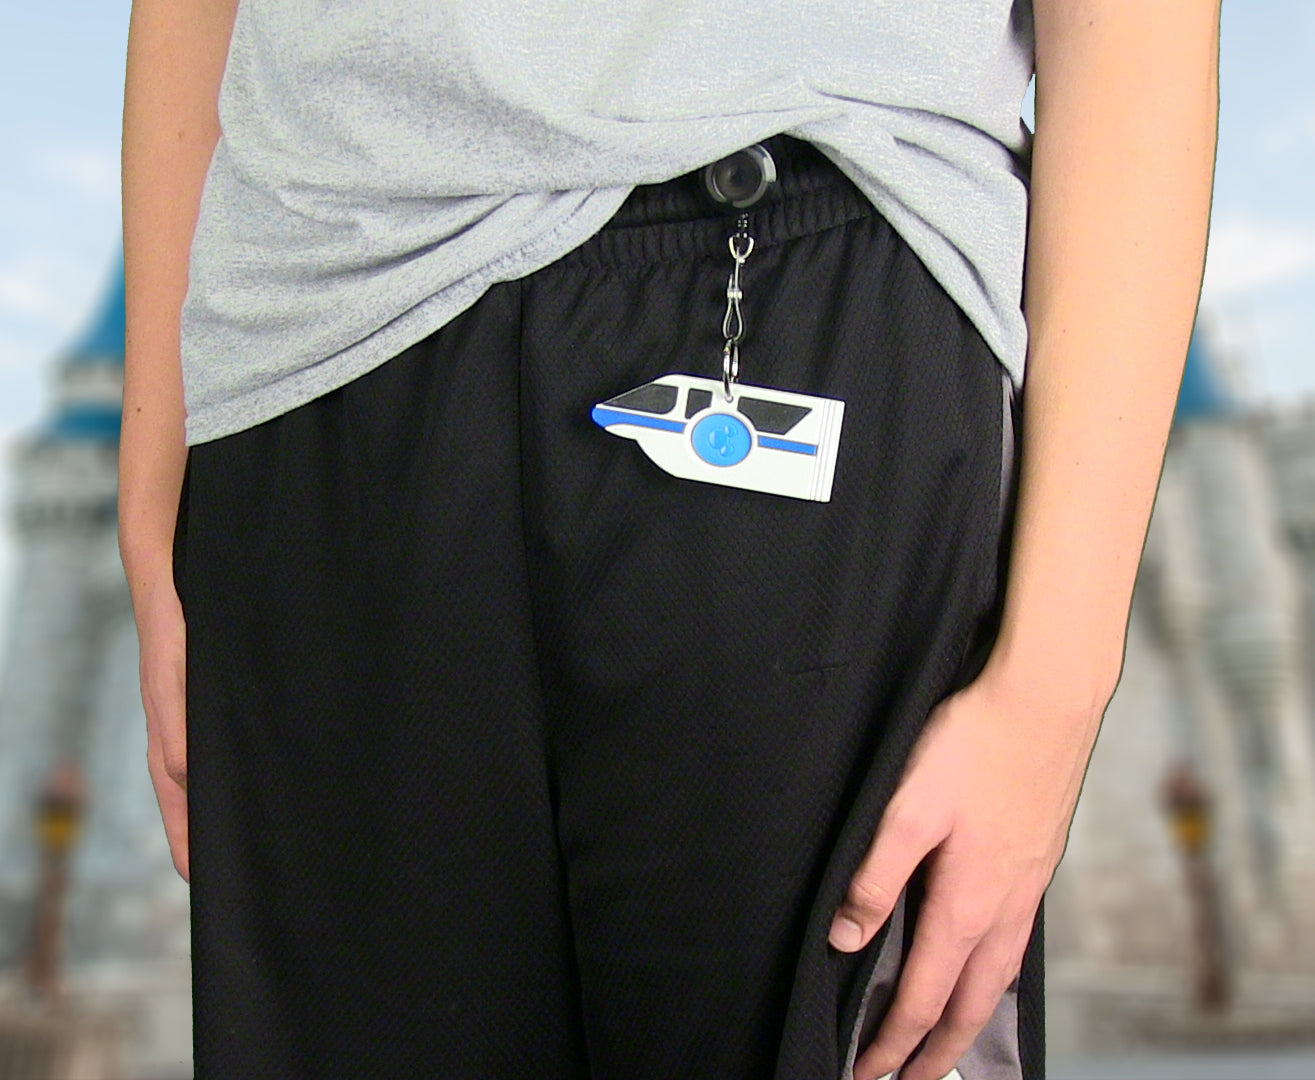 Boy using Monorail Magic Band Buddy with a retractable badge reel clipped to shorts